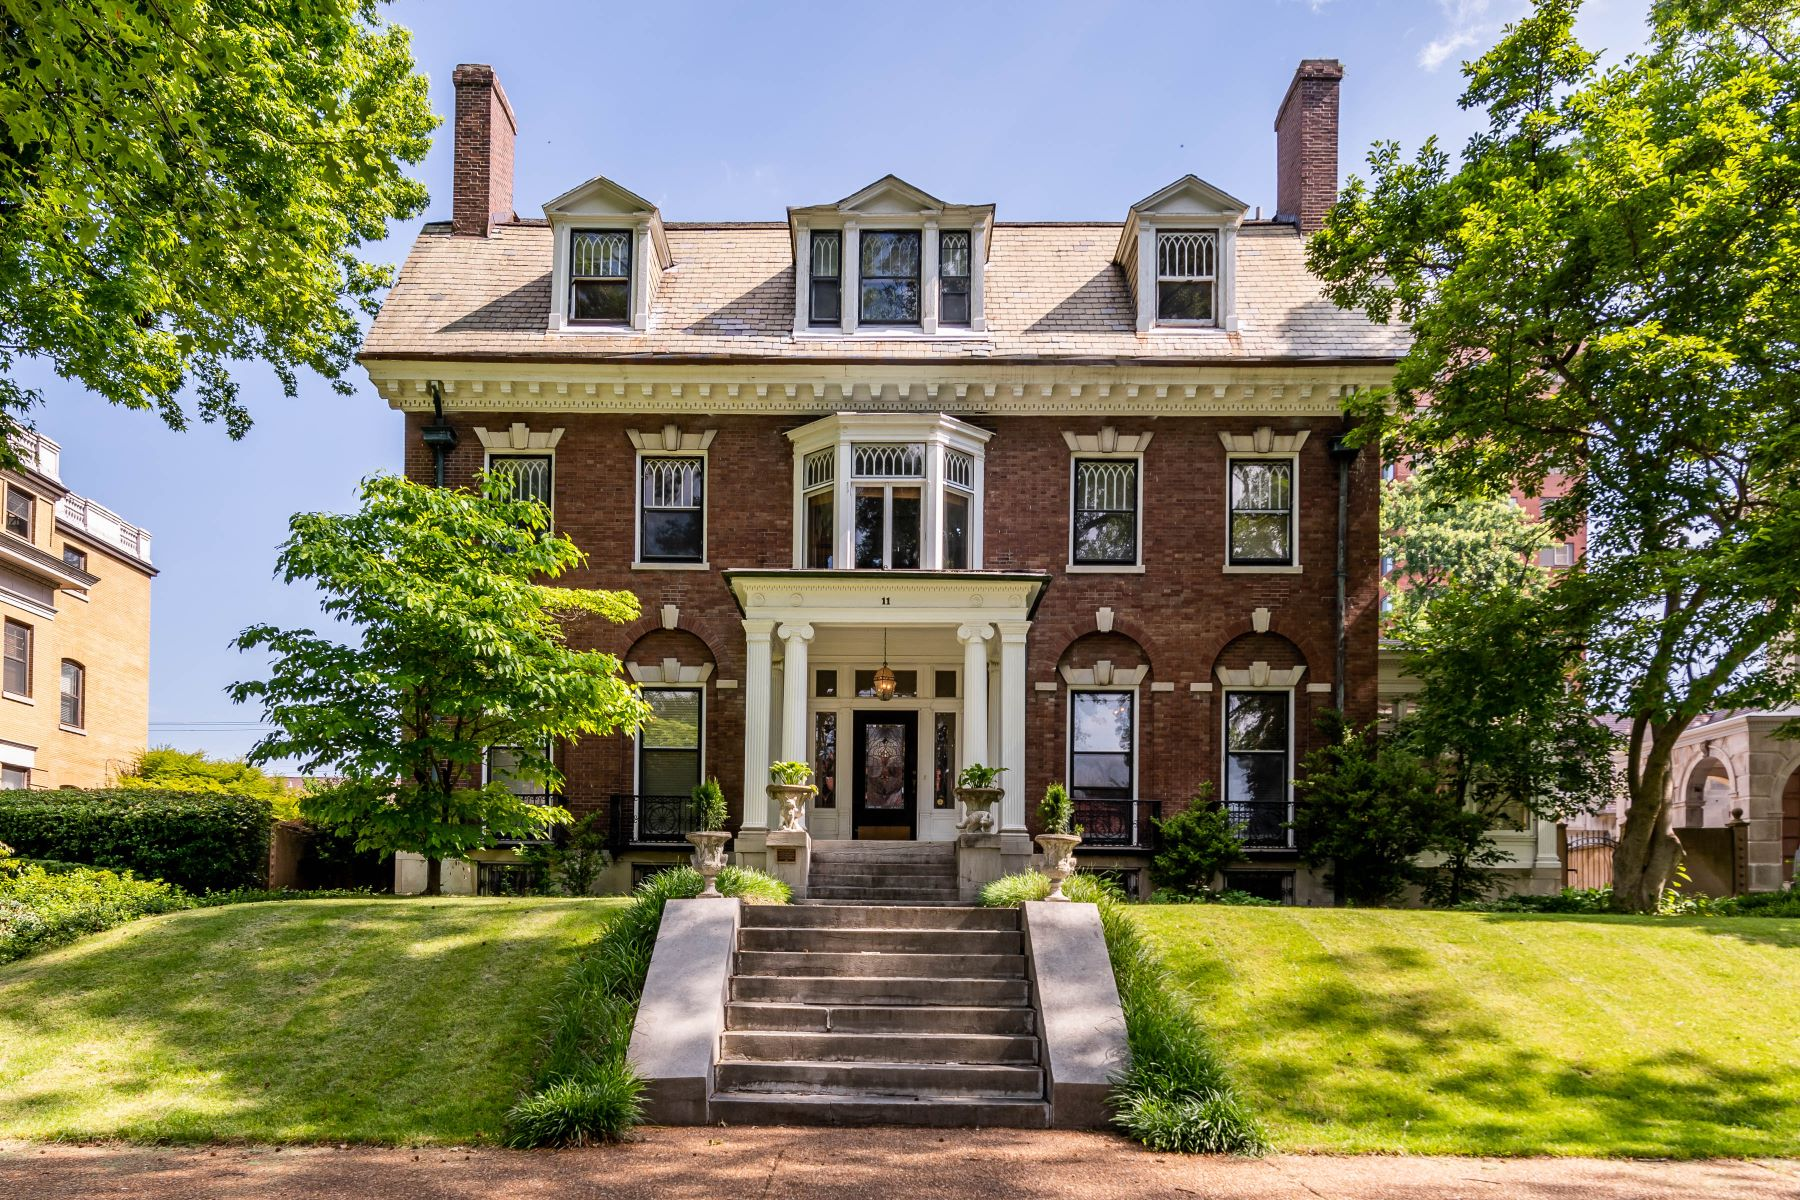 Property for Sale at Historic Manse in the popular Washington Terrace neighborhood of the CWE 11 Washington Terrace St. Louis, Missouri 63112 United States